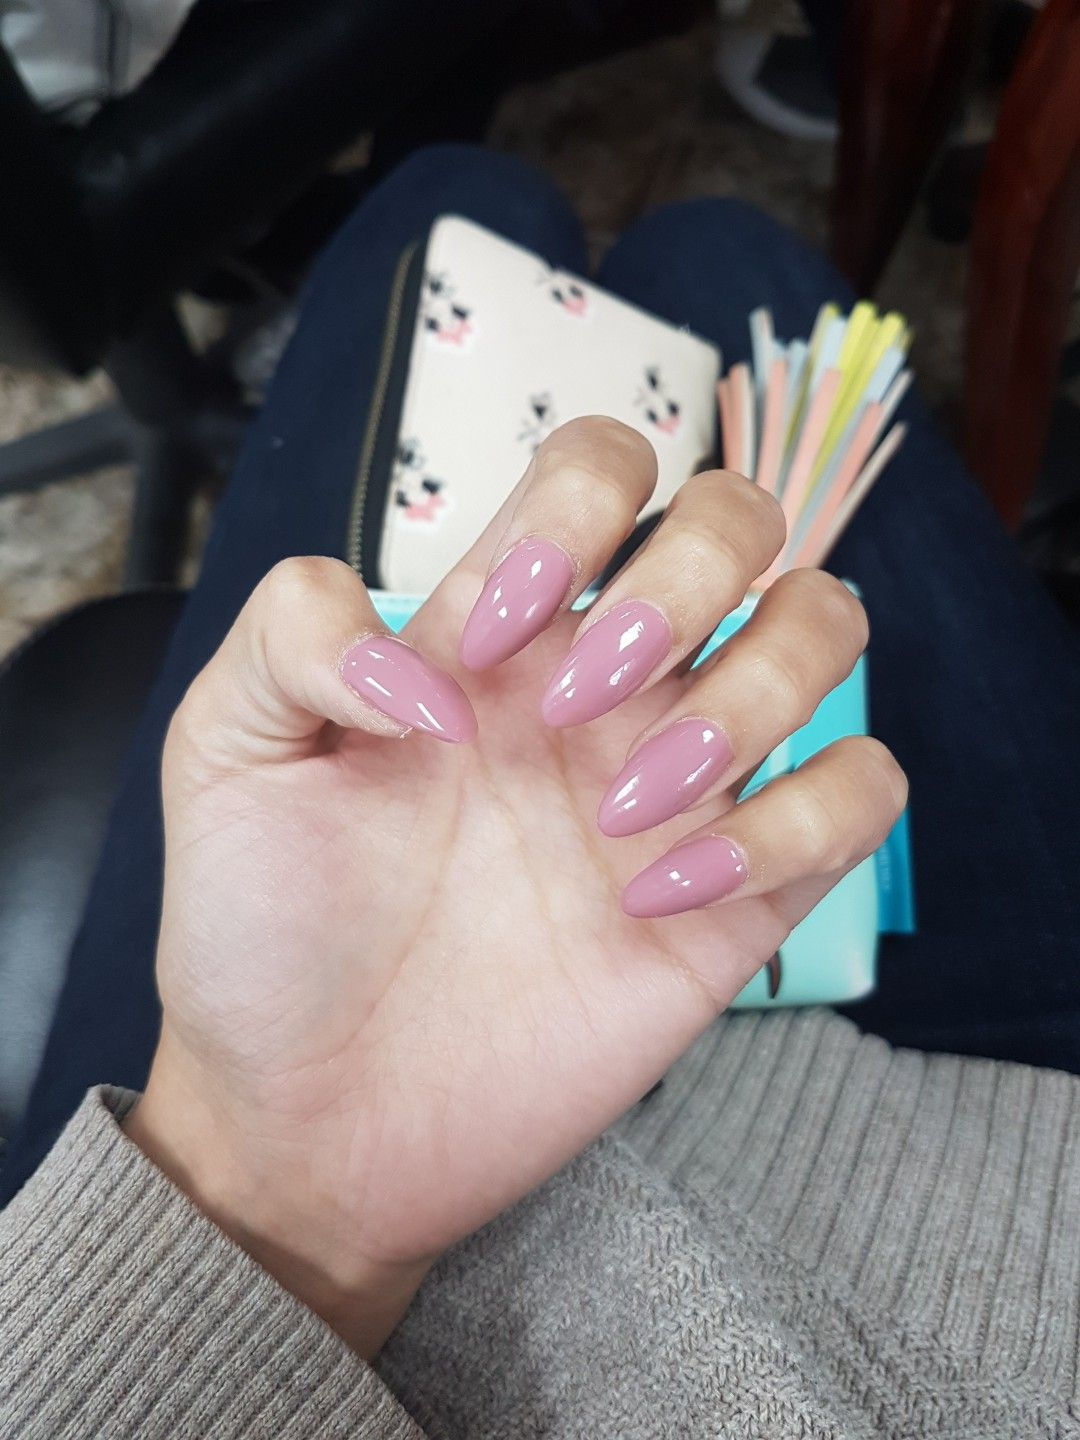 Long nails tickle